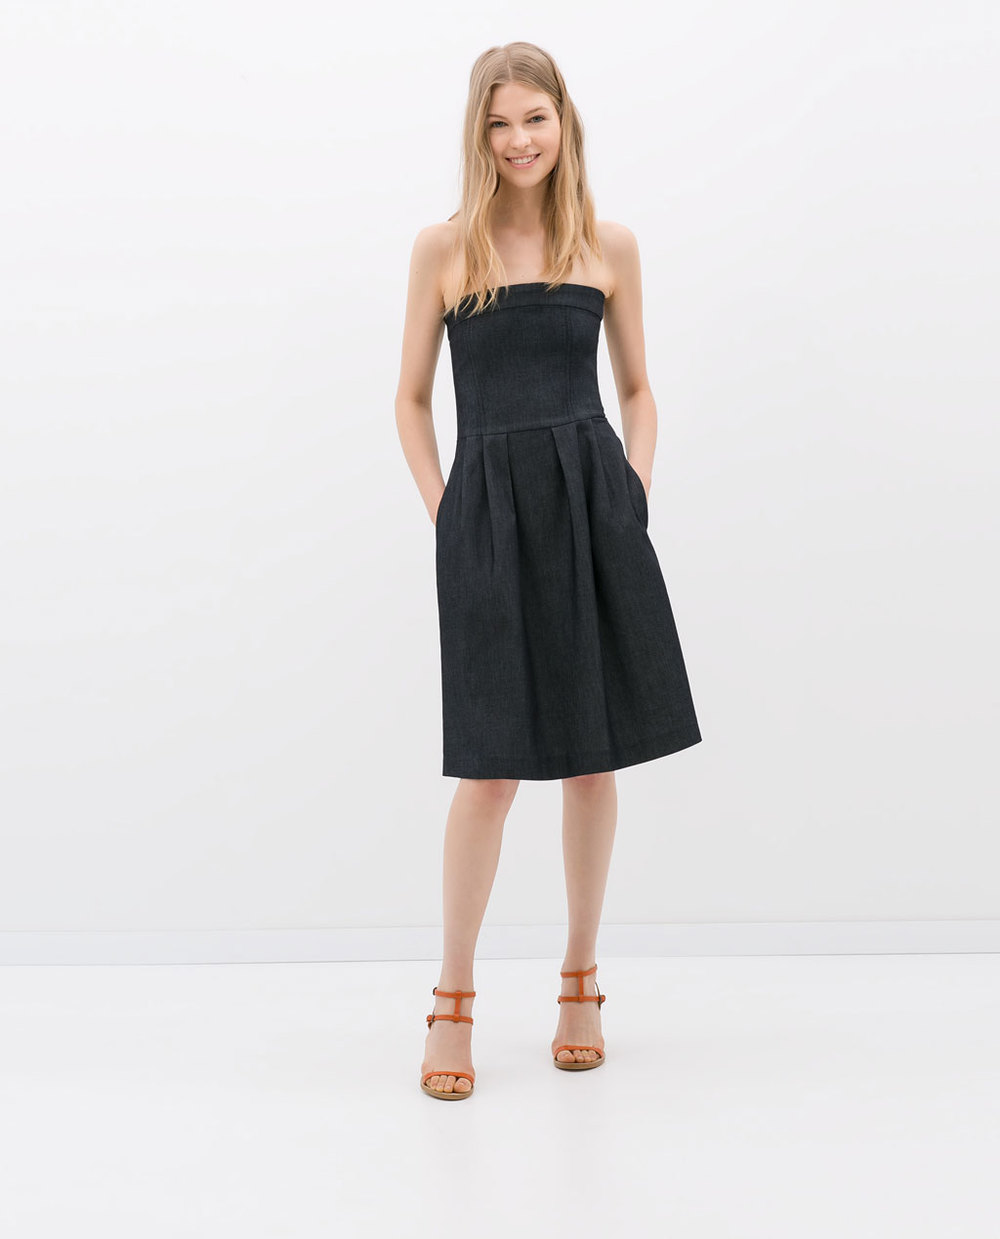 Denim dress. Zara. $59.90.